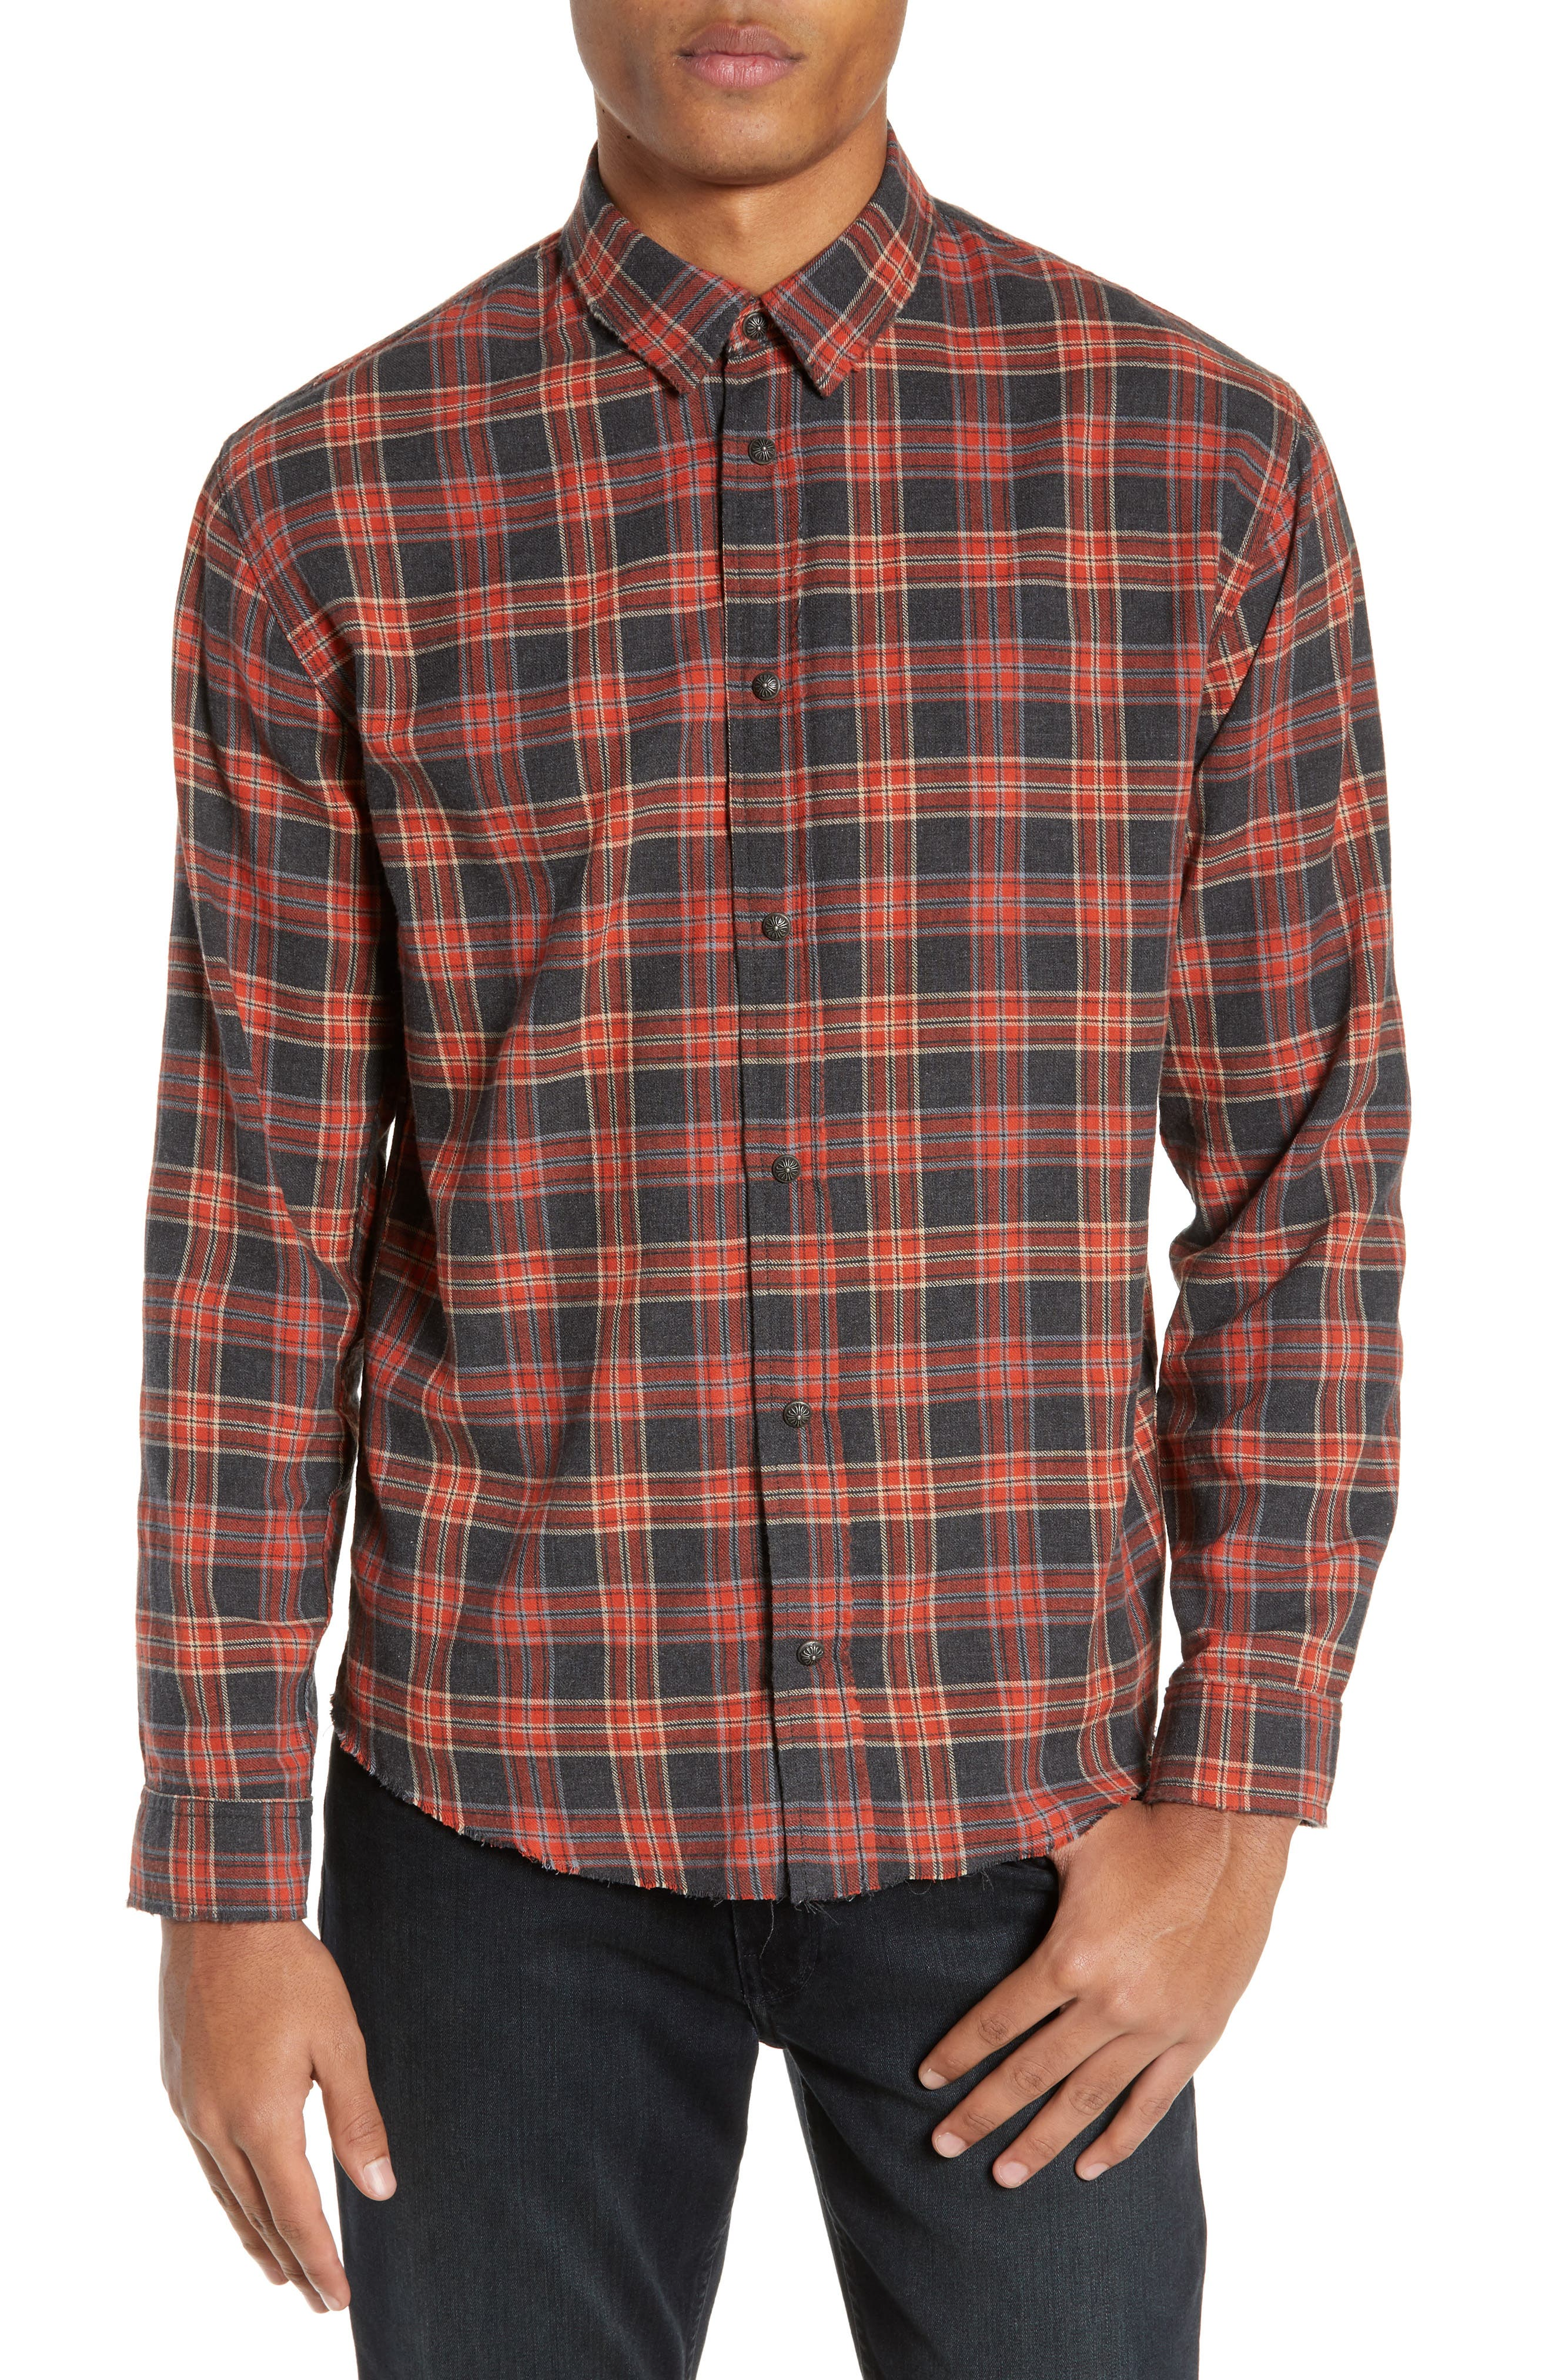 THE KOOPLES, Plaid Regular Fit Flannel Shirt, Main thumbnail 1, color, 800